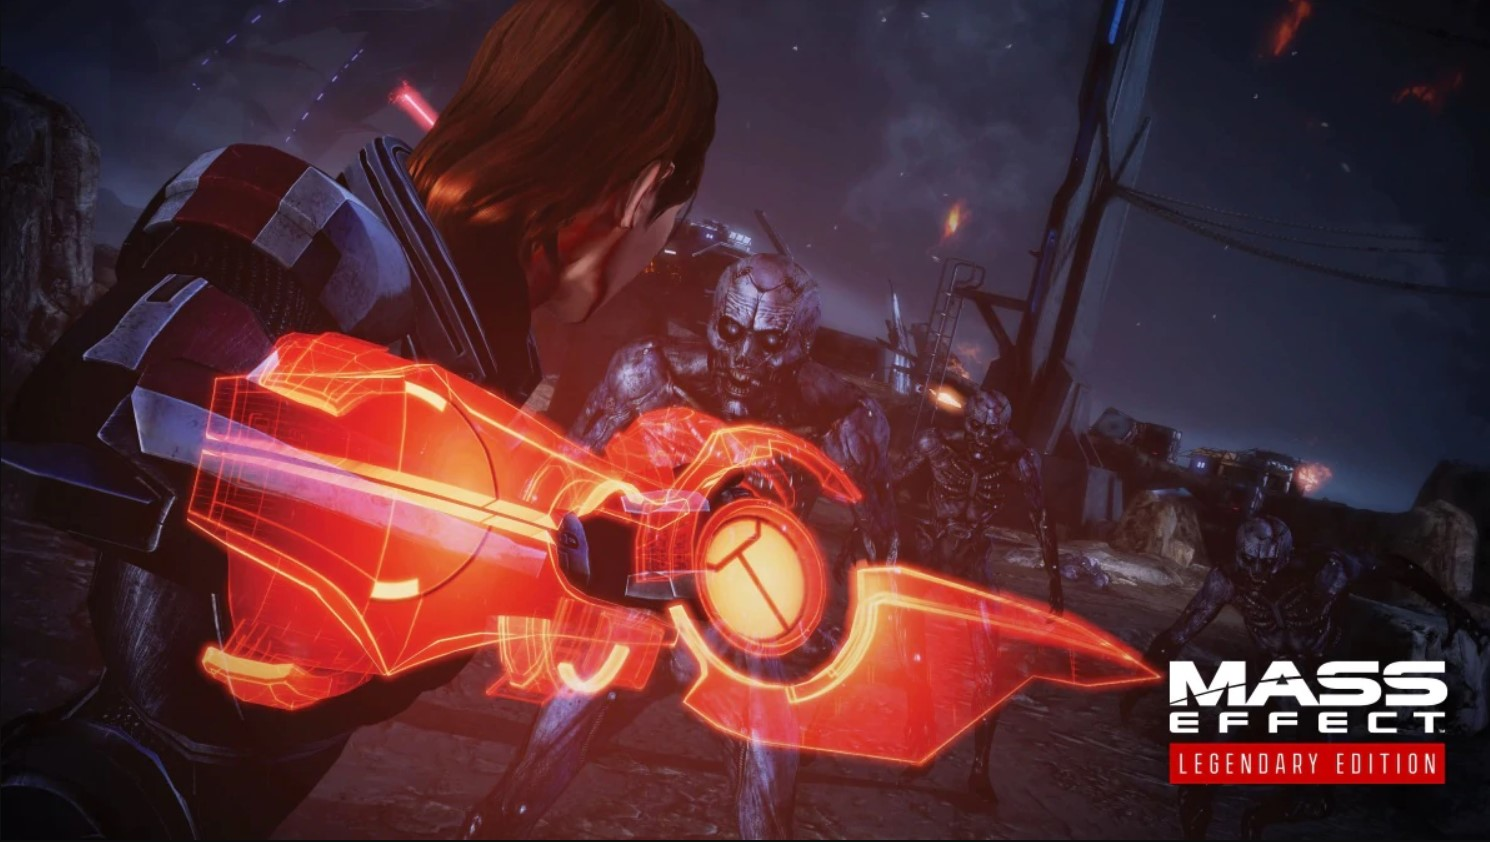 Mass Effect Legendary Edition Full Game Free Version APK Android Mobile Setup Download